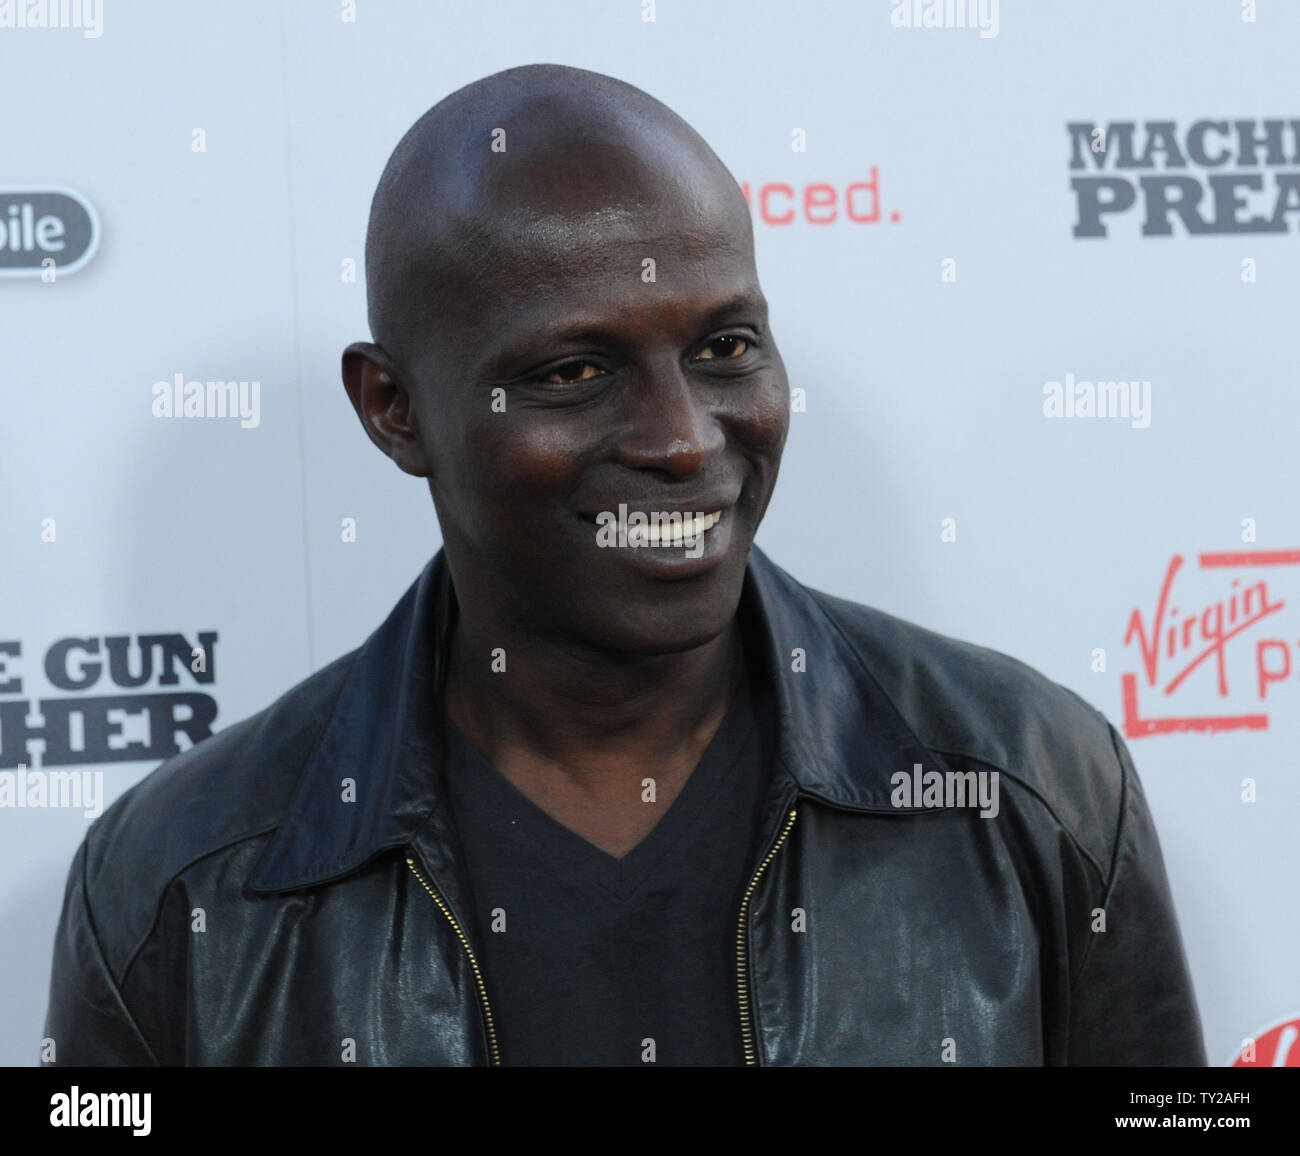 Souleyman Sy Savane A Cast Member In The Motion Picture Machine